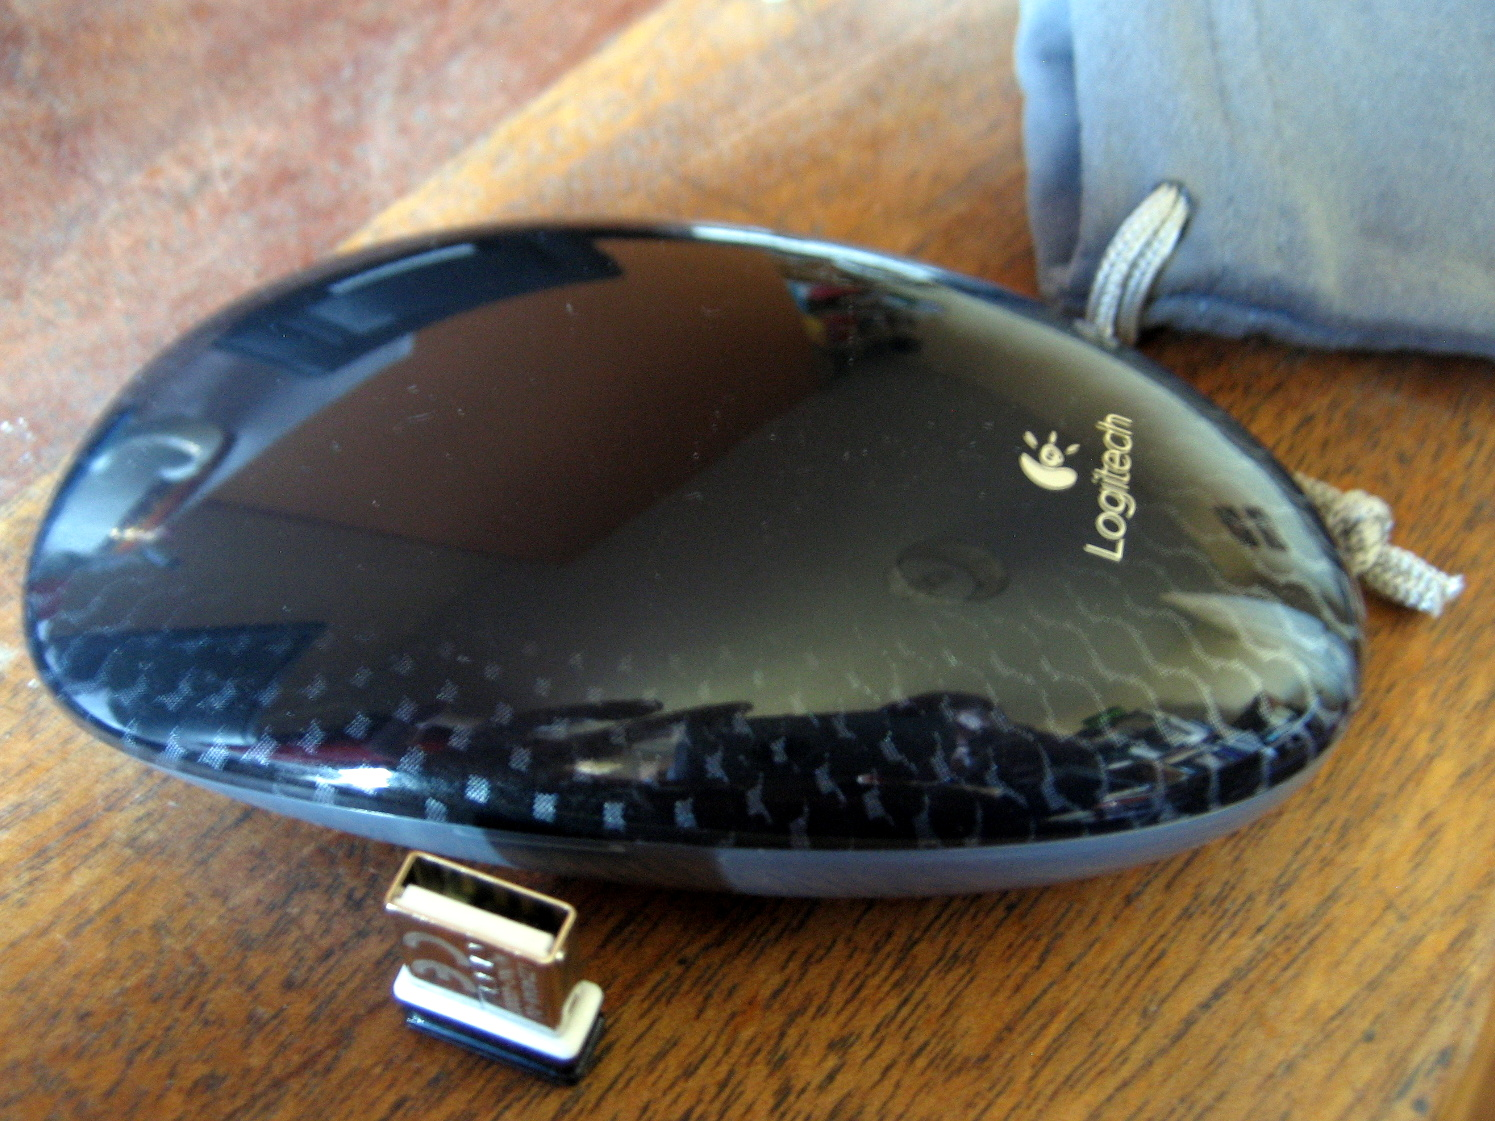 Touch Mouse Logitech Wi-Fi Mouse no wheel mouse review T620